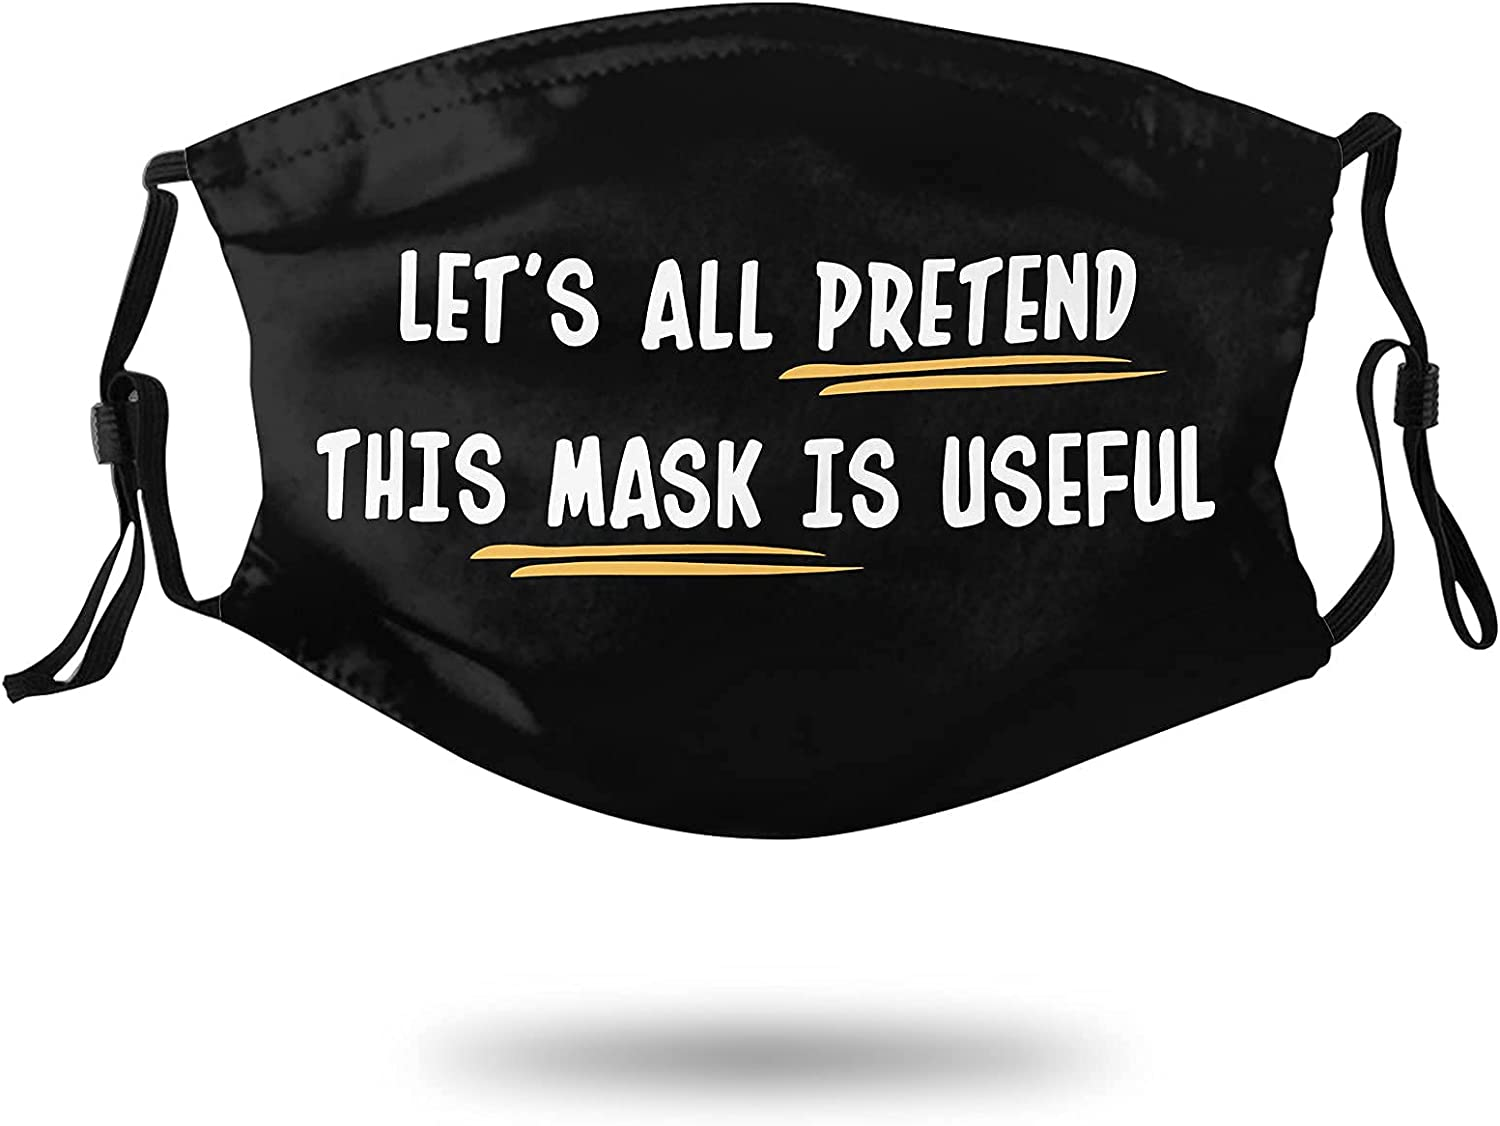 Let's All Prentend This Mask is Useful Face Mask Adjustable Reusable Balaclavas Face Protector Unisex with 2 Filter